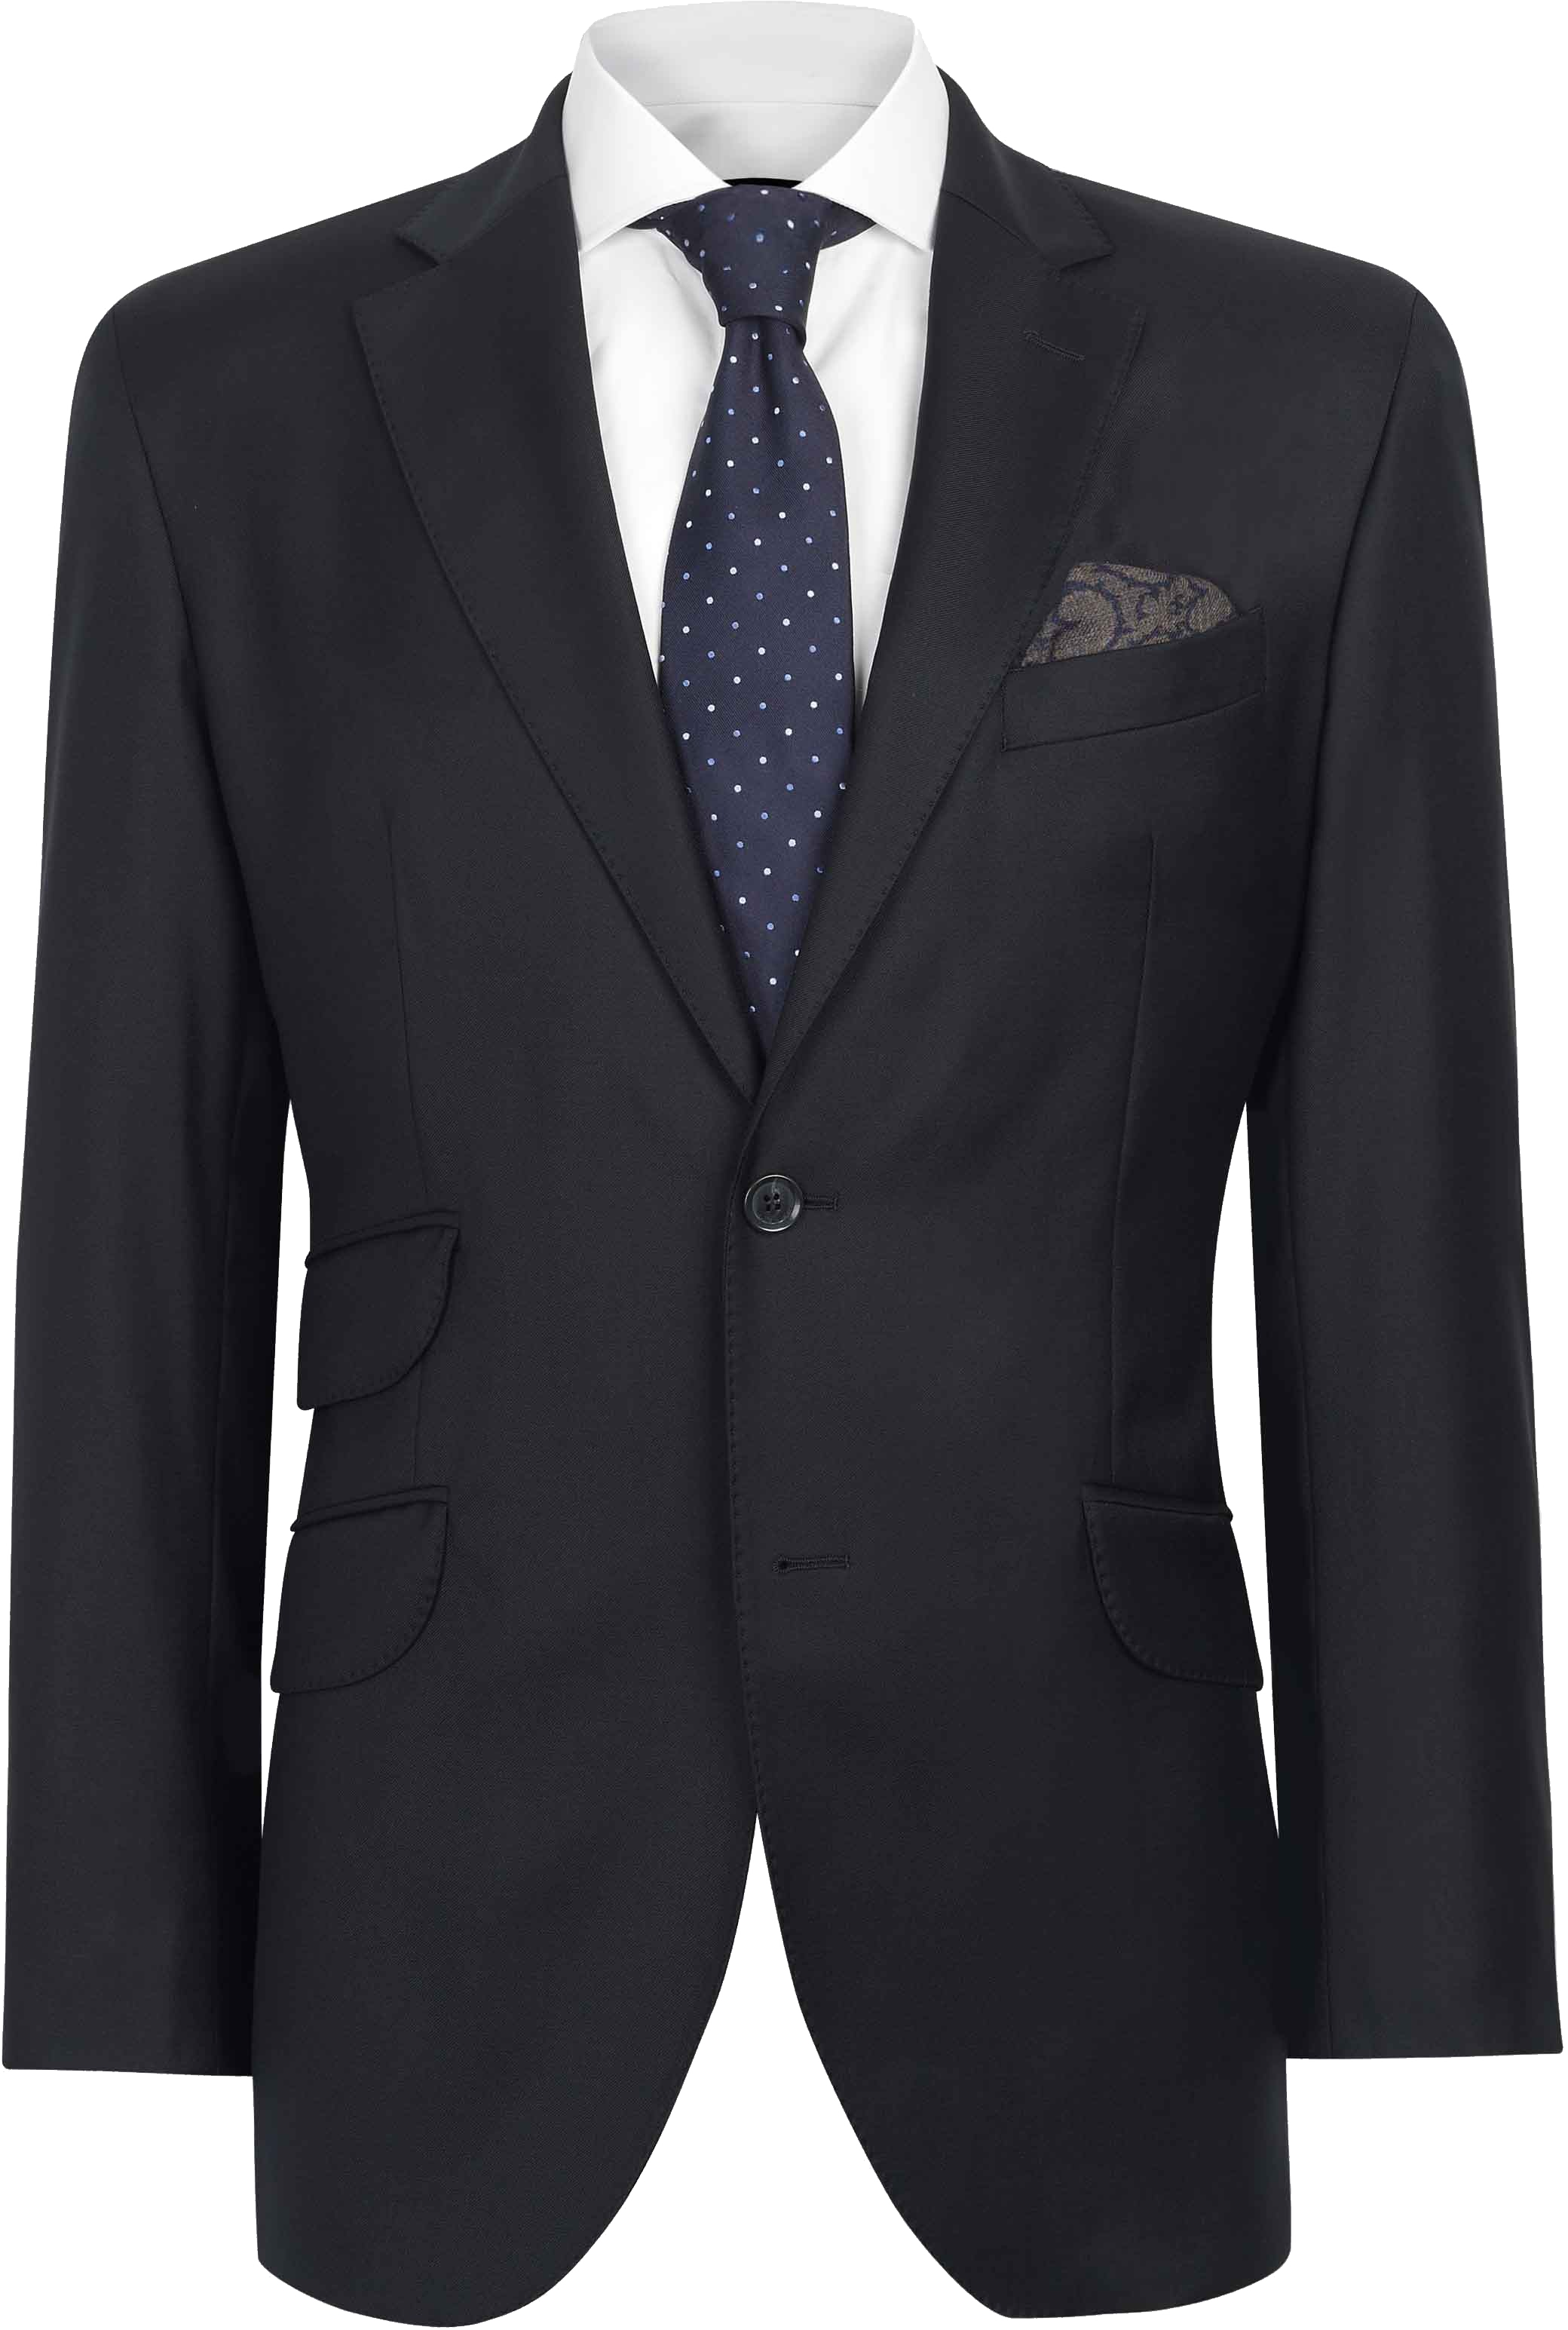 Suit Png Images Free Download